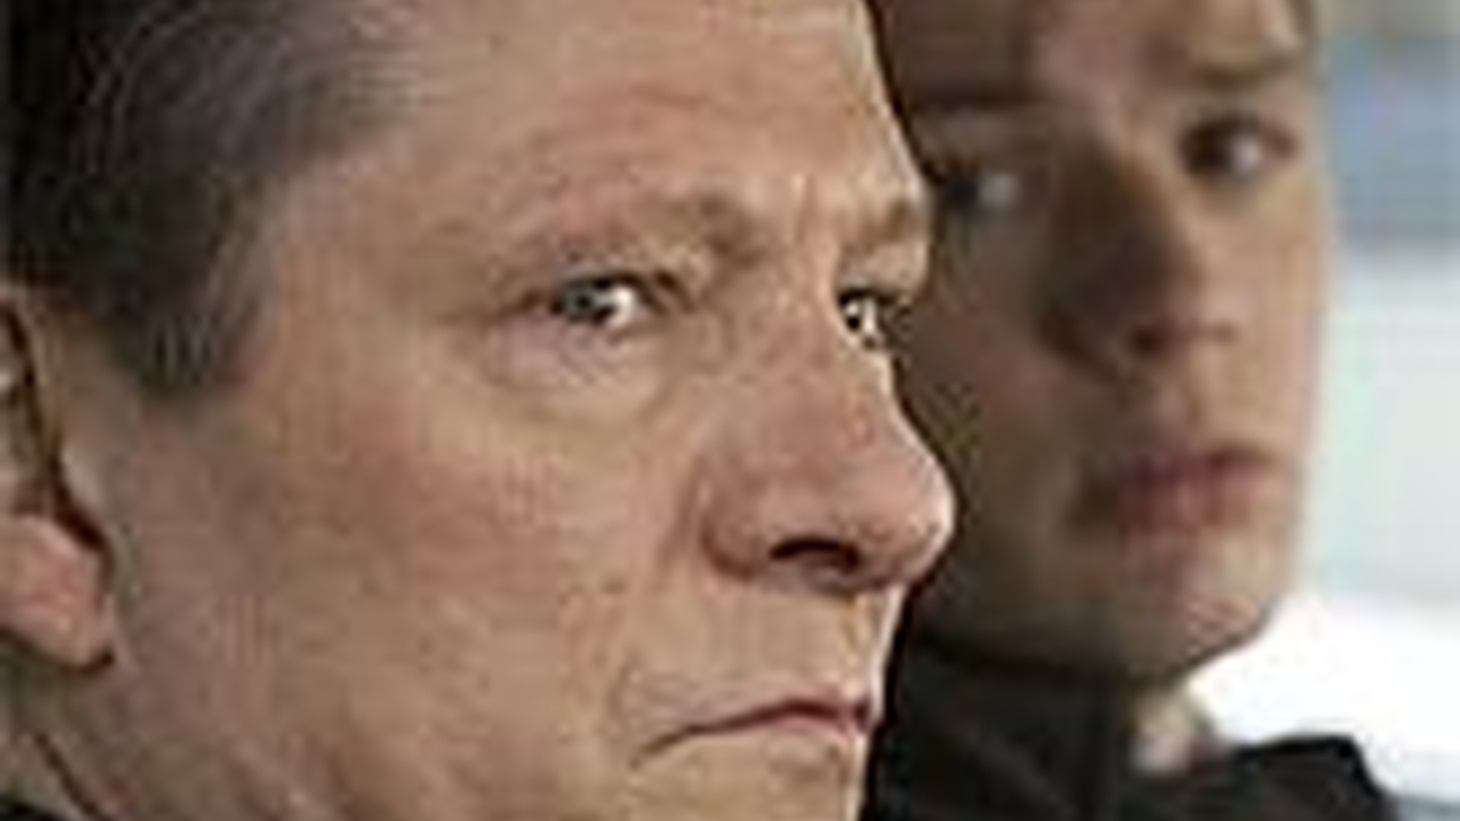 """Chris Cooper has a face that could slow a clock. In the happiest of times his expressions range, at a measured pace, from thoughtful through meditative to mournful. In Billy Ray's thriller """"Breach,"""" he's got very little to be happy about. He plays Robert Hanssen, a tortured and devious FBI agent who was a spy for the Soviet Union. Hanssen was arrested in 2001, and won the dubious distinction of being the most notorious turncoat in the bureau's history. The movie is serious, intelligent, intentionally claustrophobic and awfully somber - you may remember it in black and white, though it was shot in color (by the masterful Tak Fujimoto). But you'll remember Cooper's performance for exactly what it is, an uncompromising study in the gradual decay of a soul."""